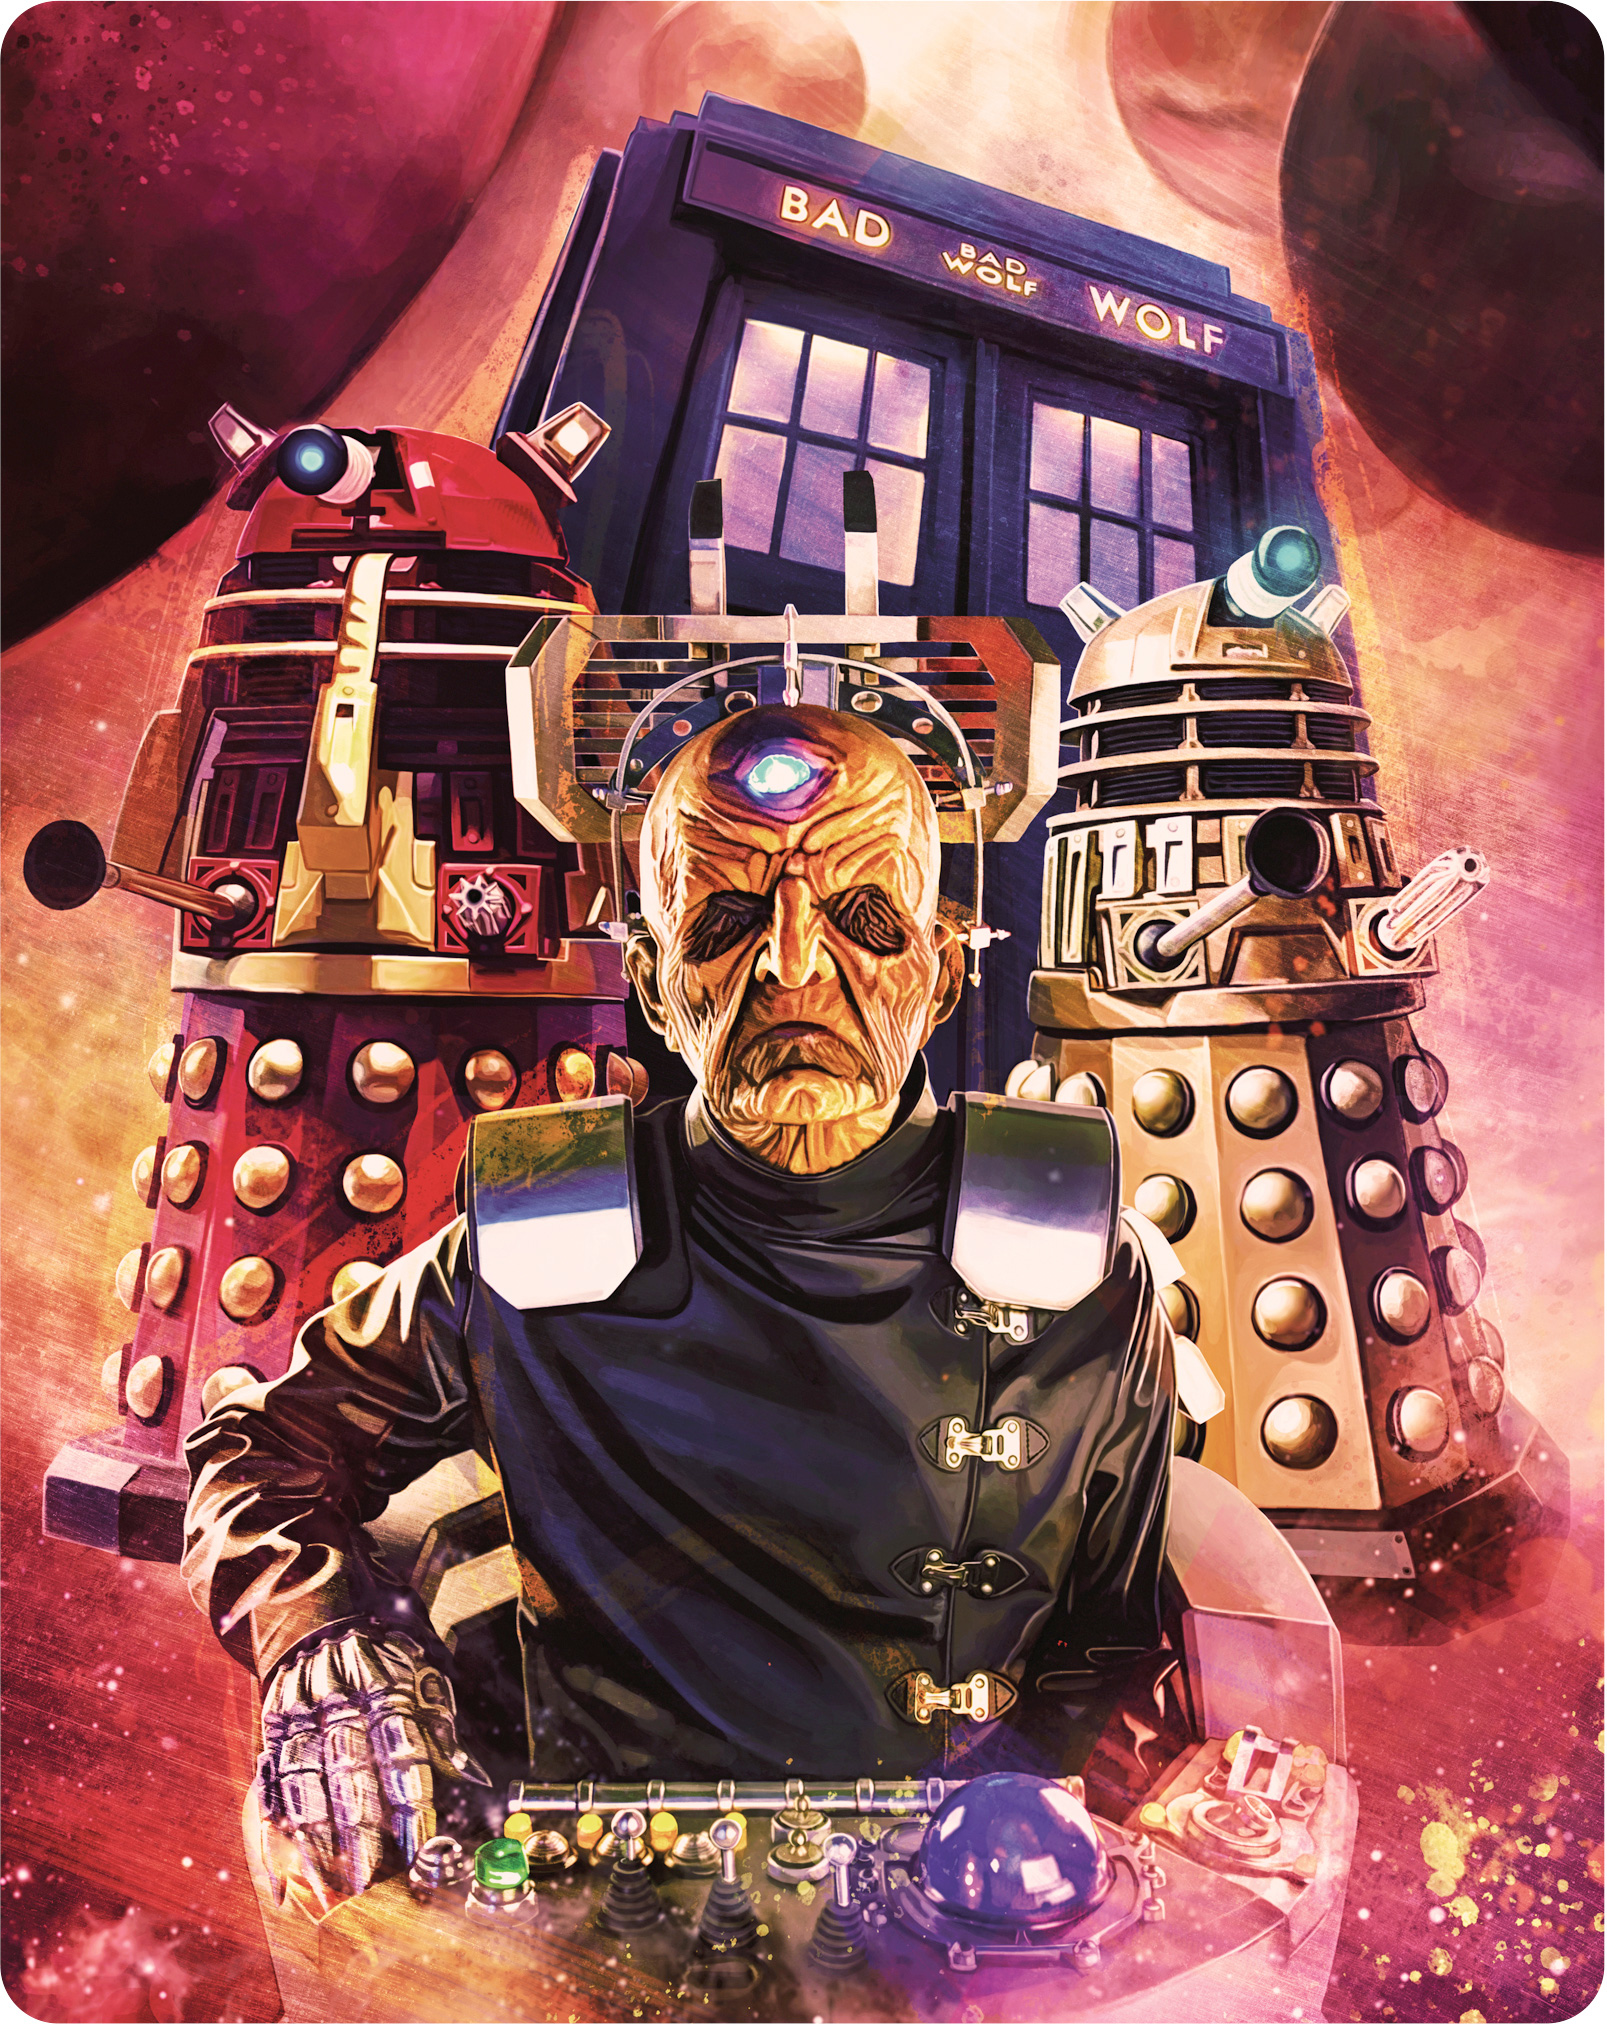 Doctor Who: Series 4 Steelbook (back cover) (Credit: BBC Studios)